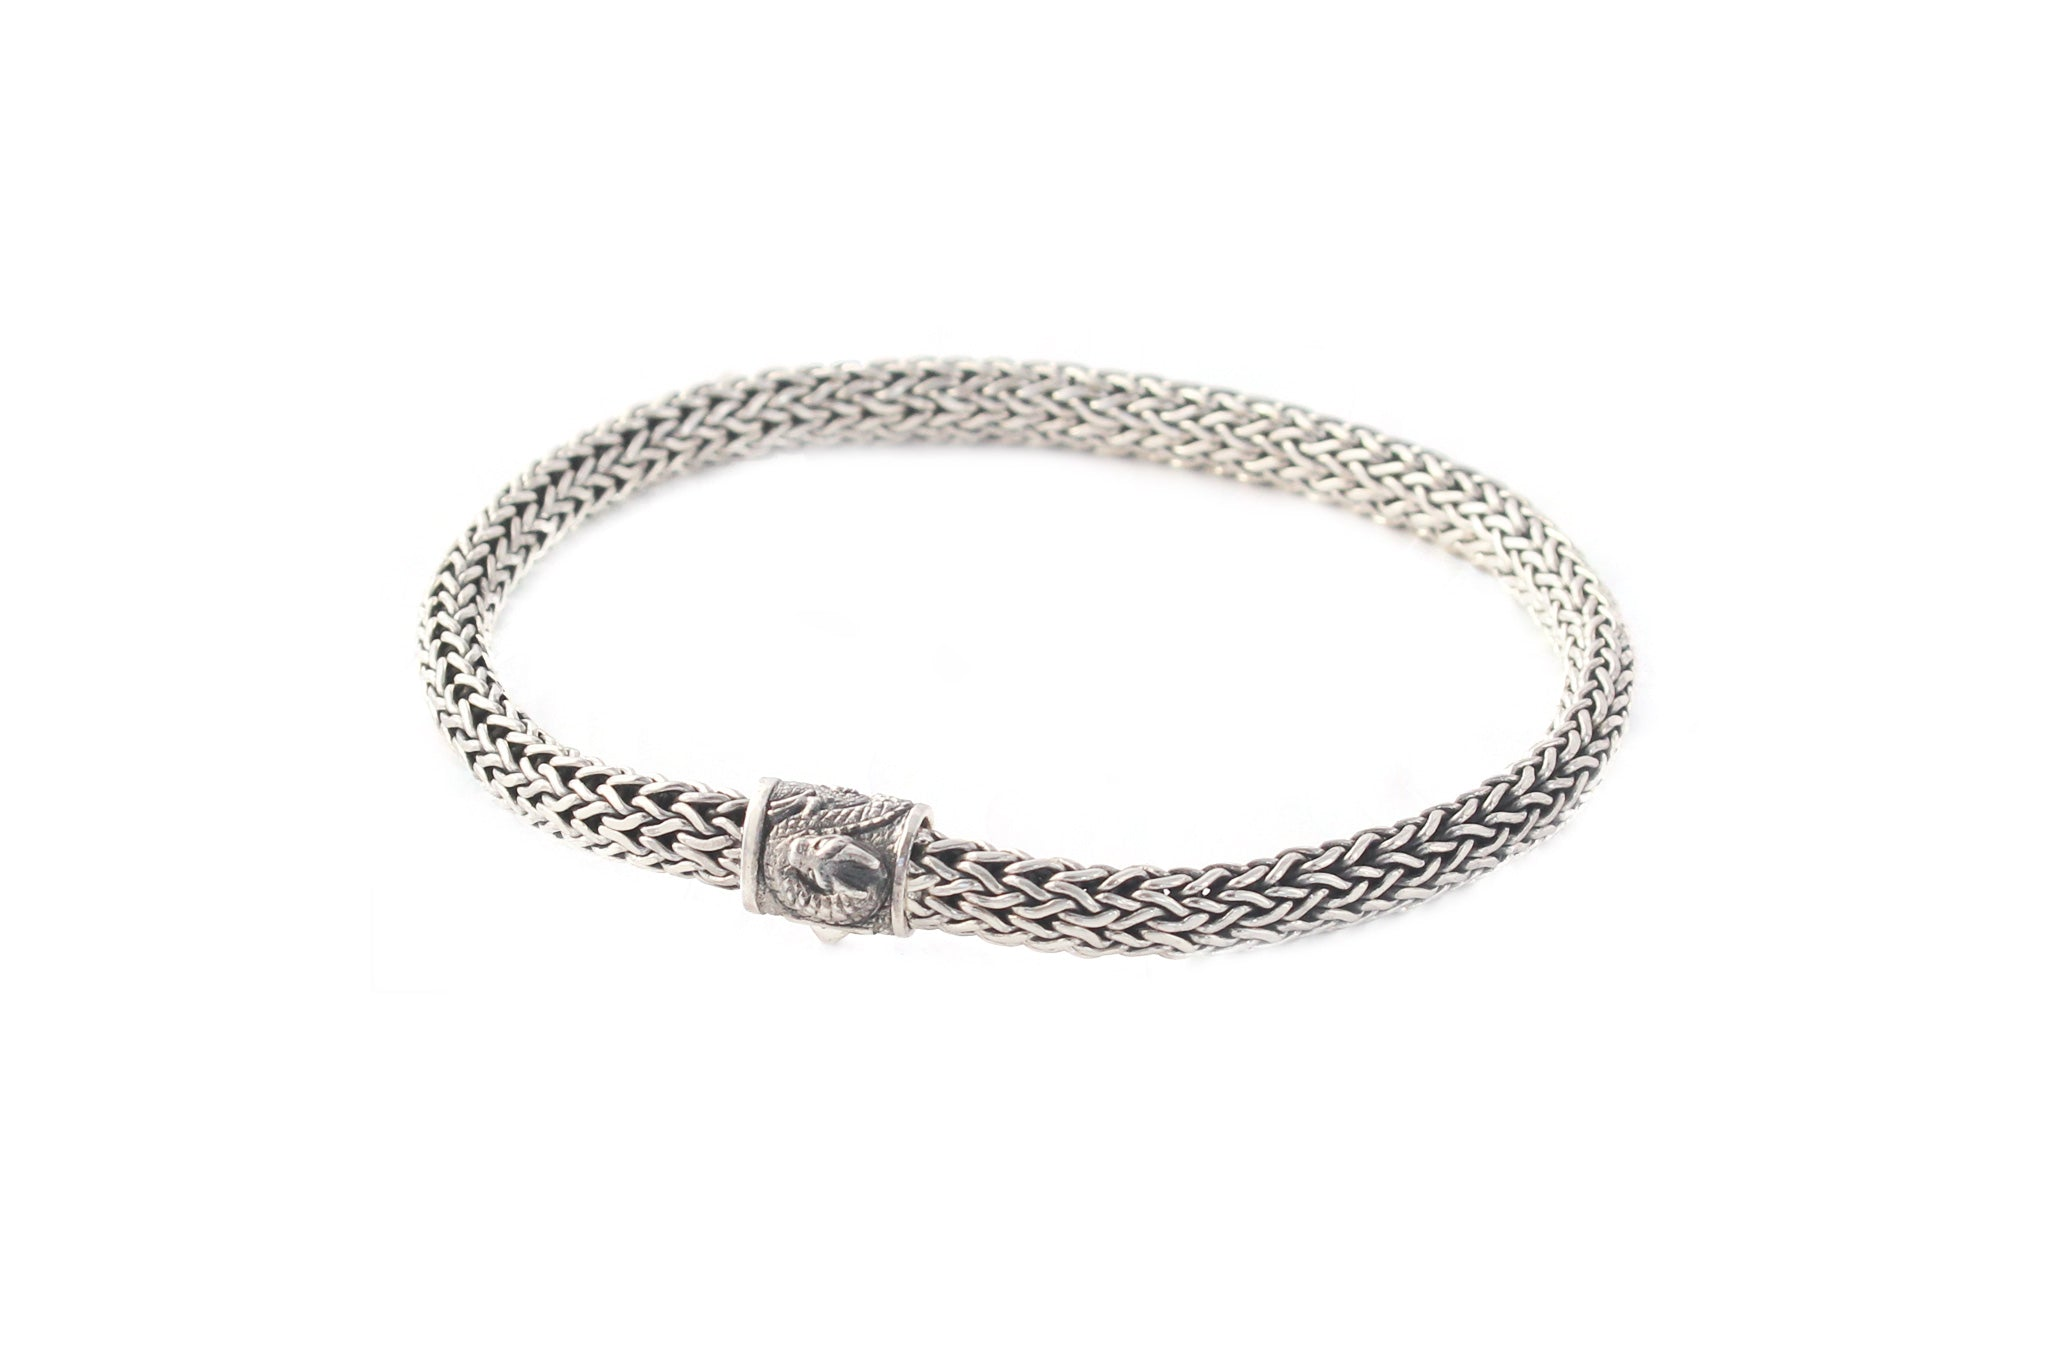 Sterling Silver Bracelet with Dragon motif